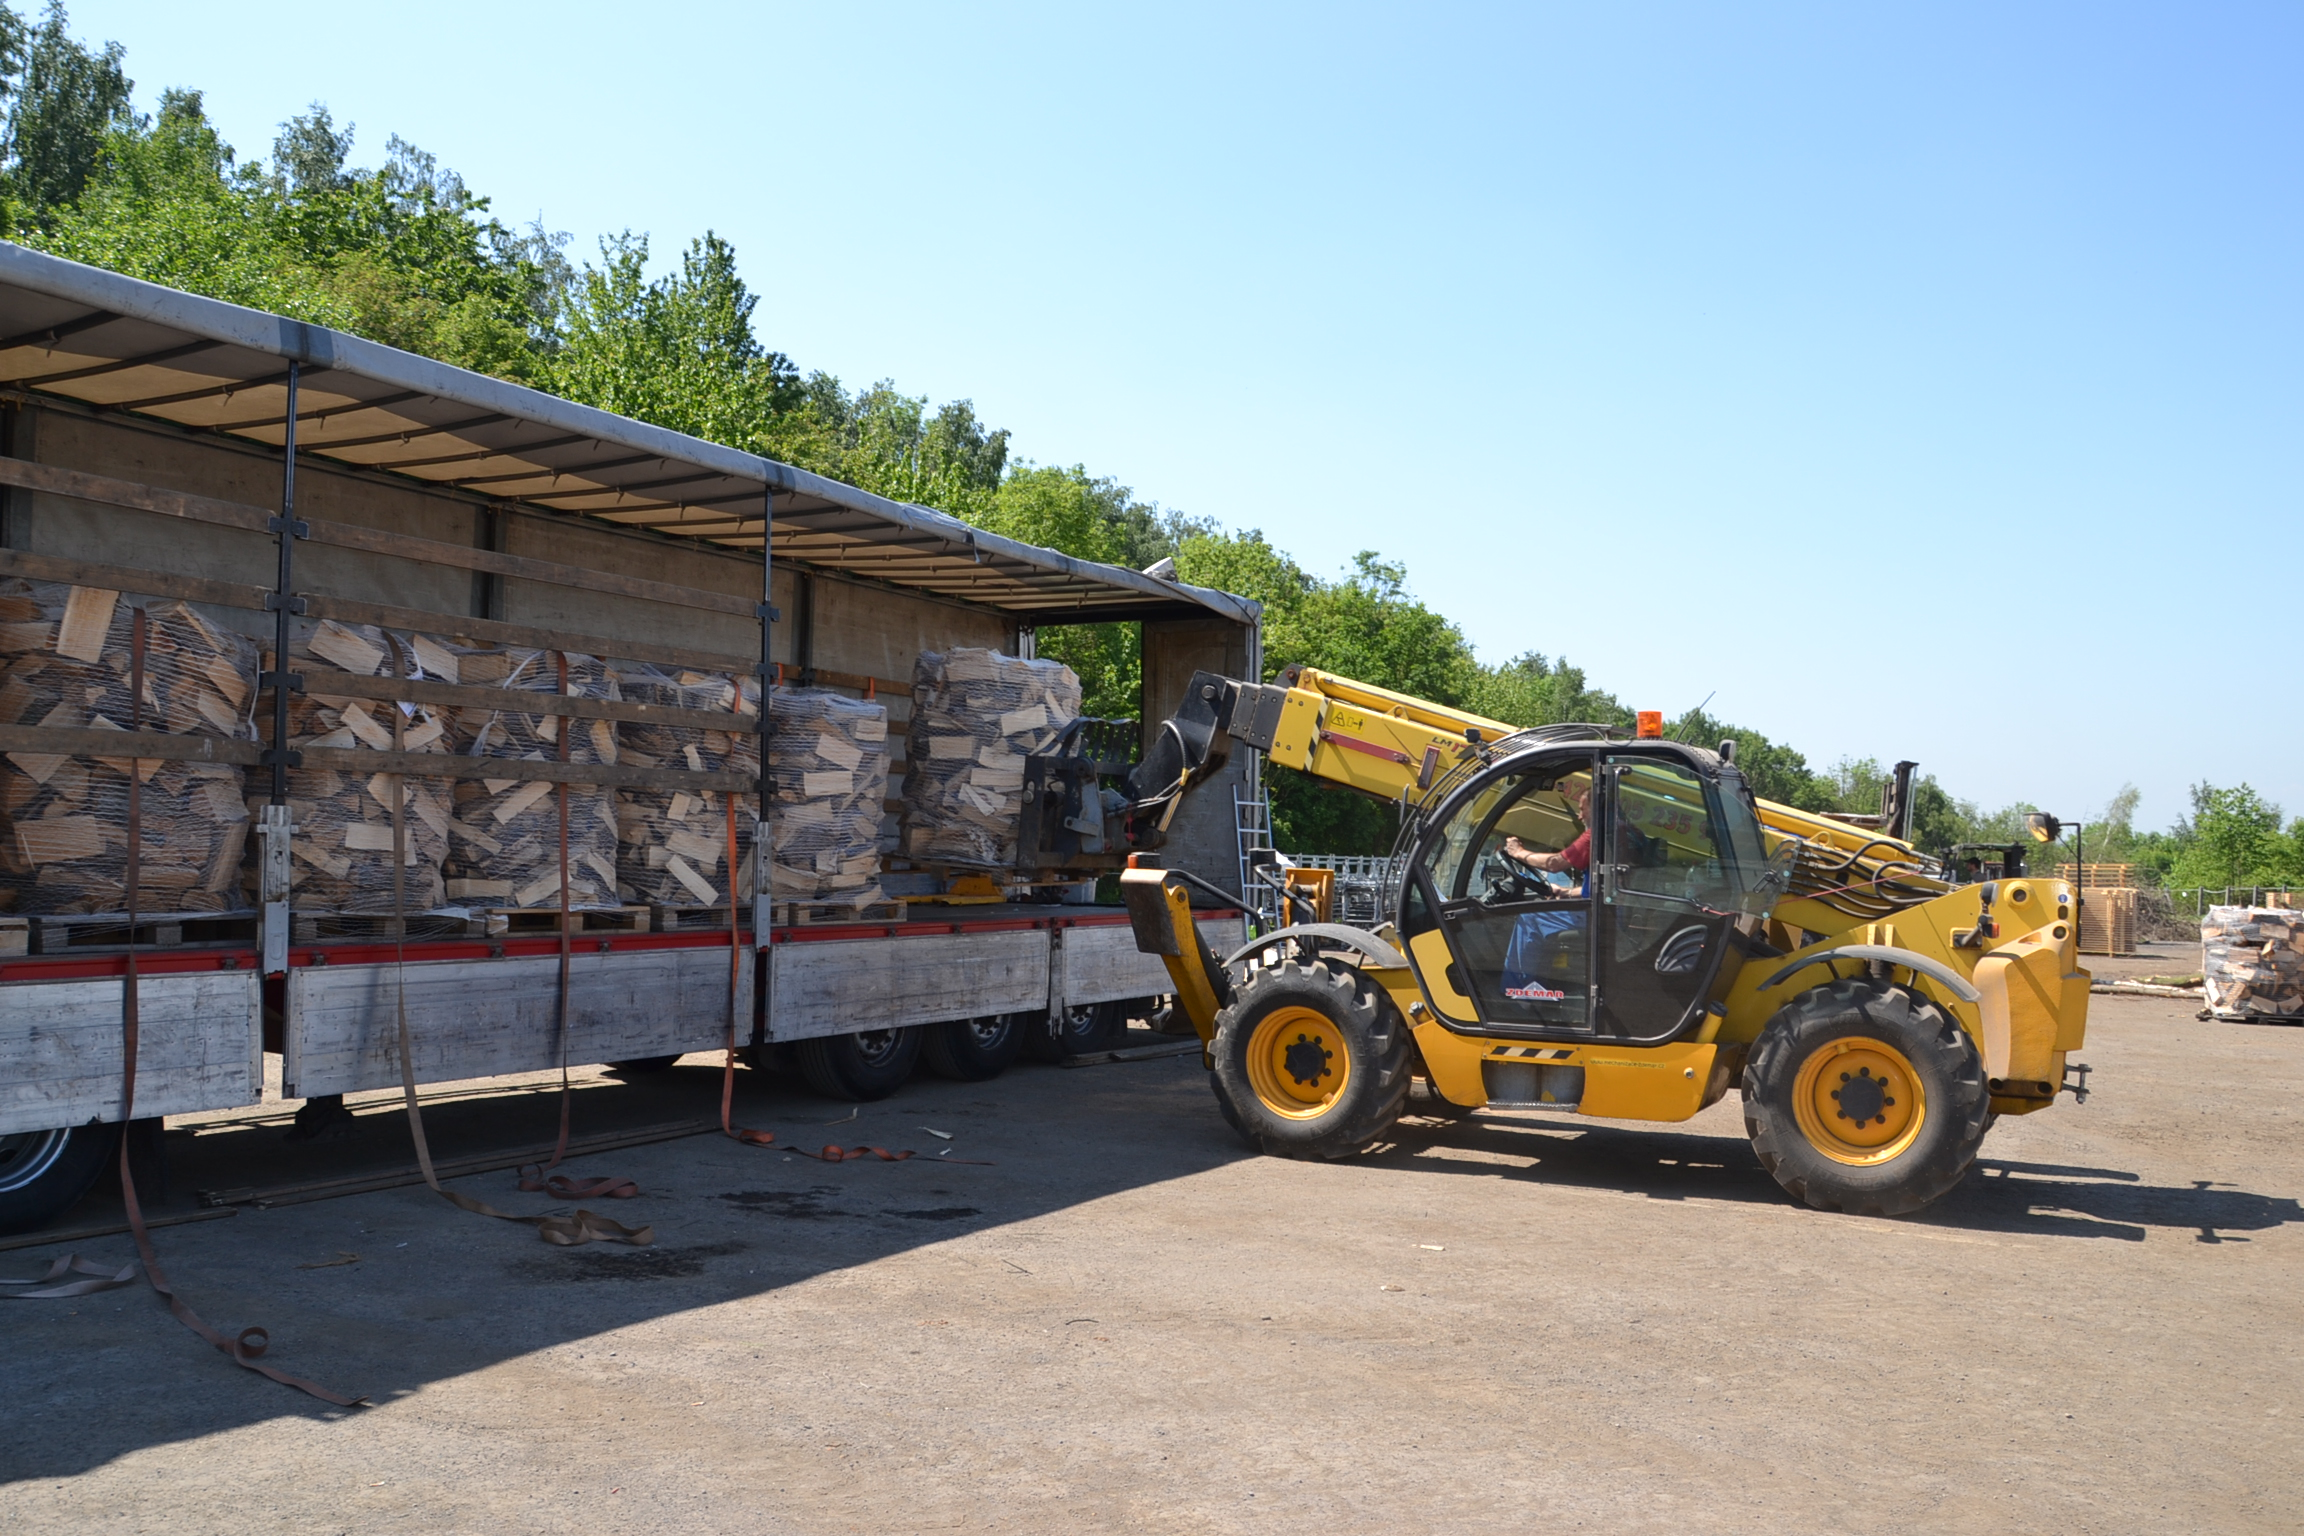 Loading of a pallet goods